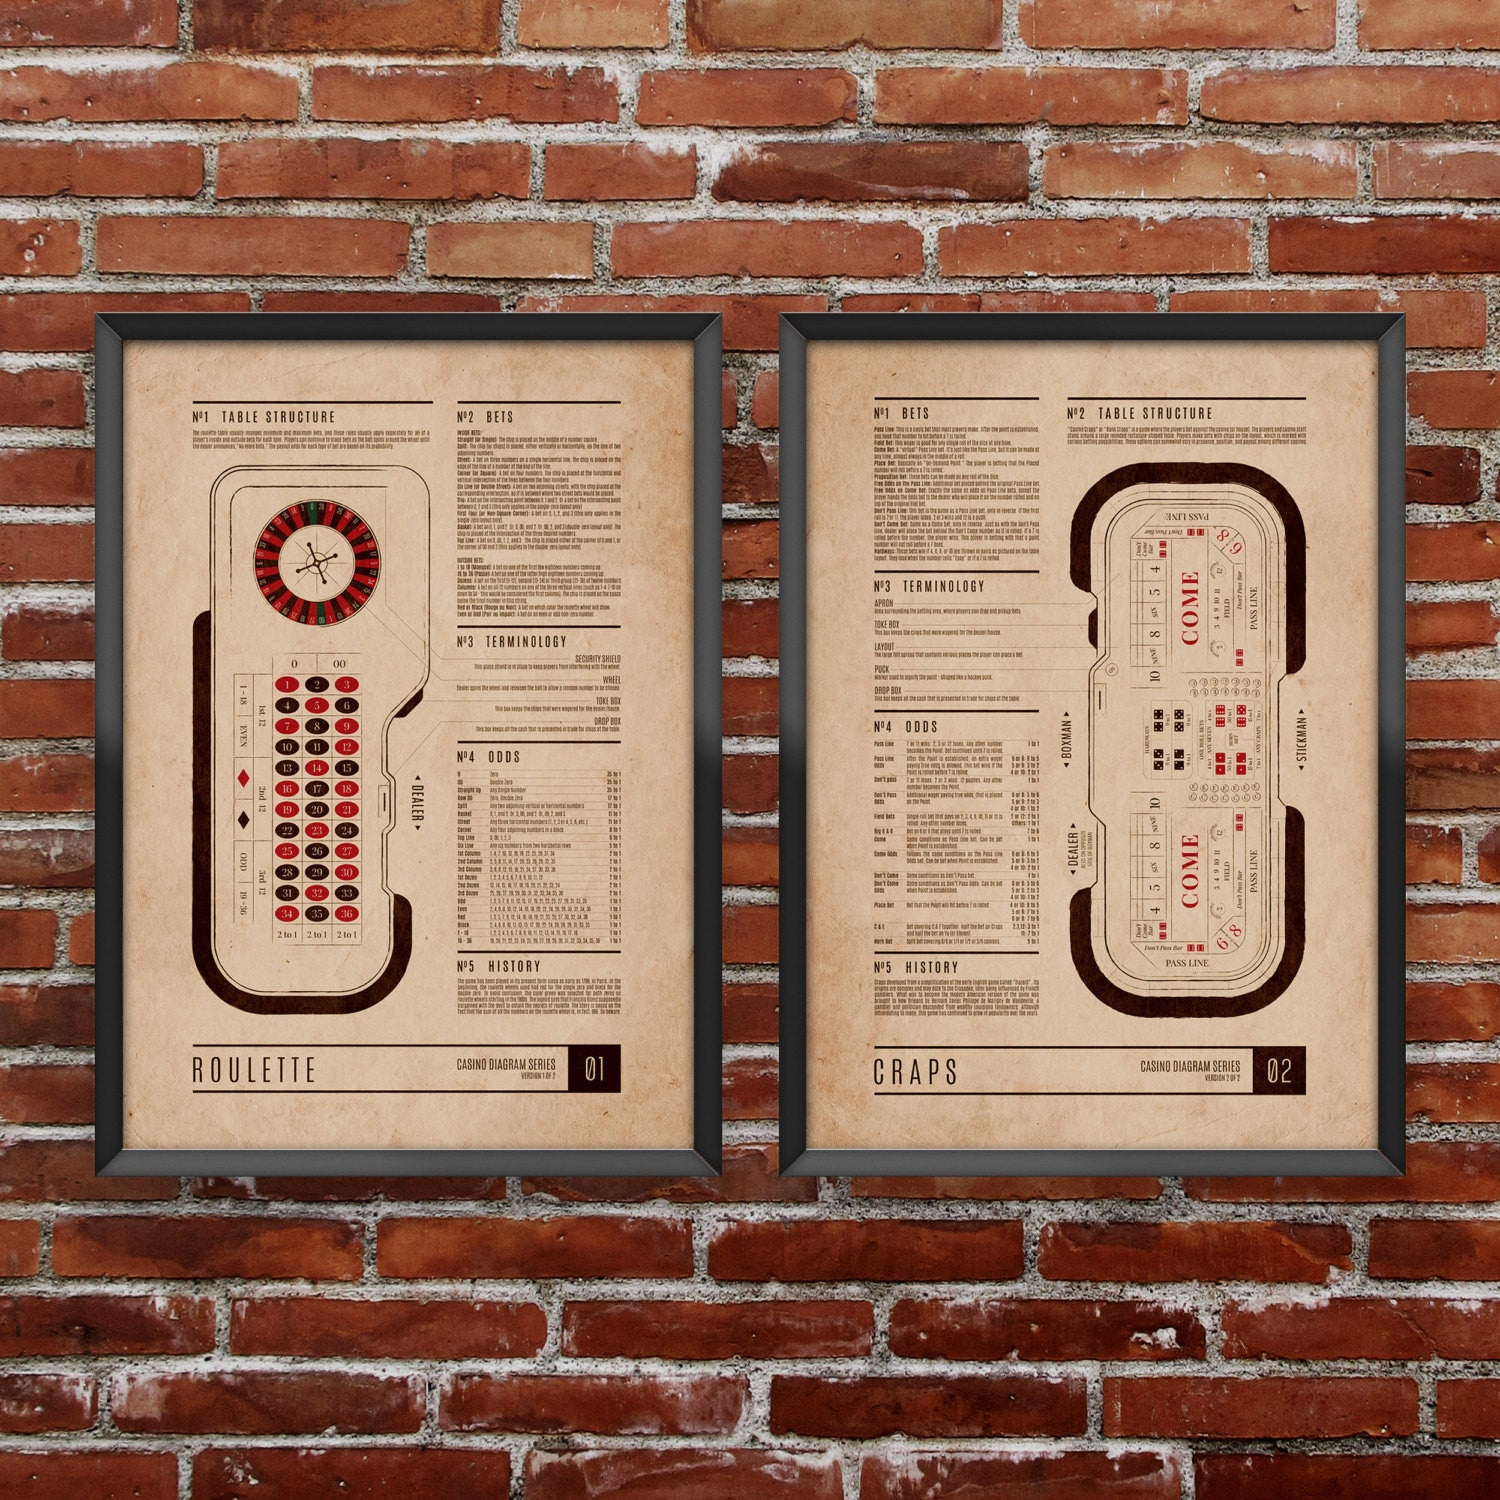 Craps & Roulette Casino Diagram Set